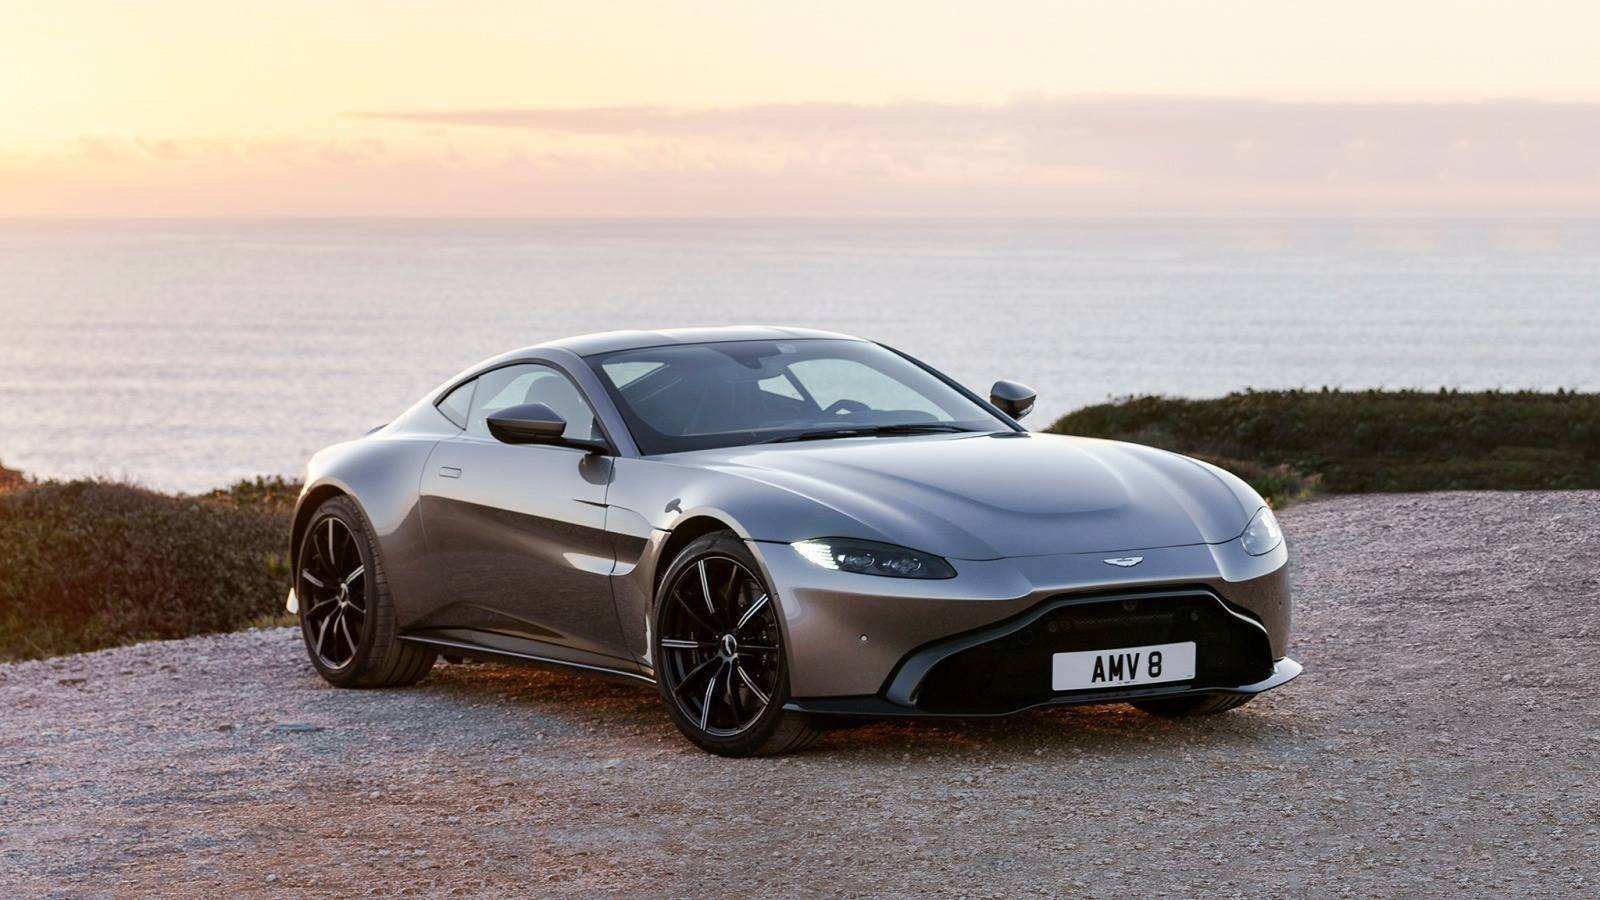 89 Concept of 2019 Aston Martin Vanquish Redesign by 2019 Aston Martin Vanquish